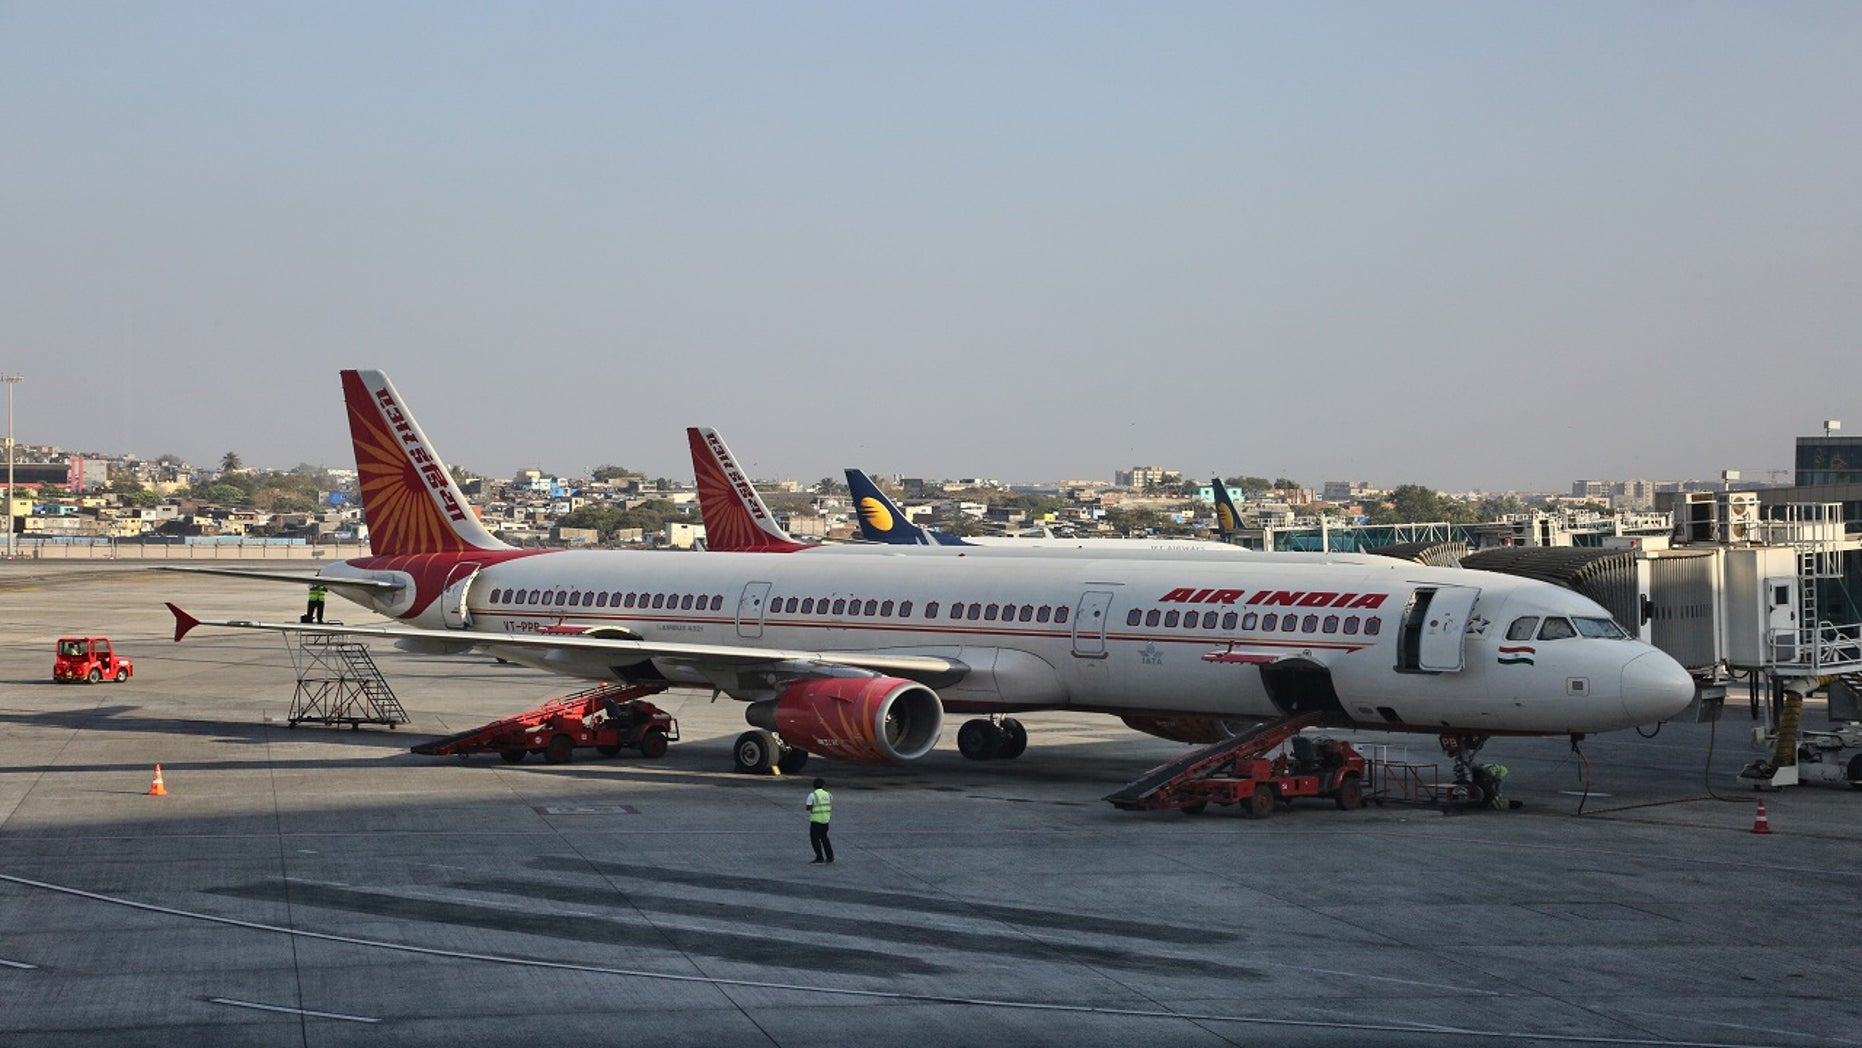 Air India plane makes emergency landing after bomb threat